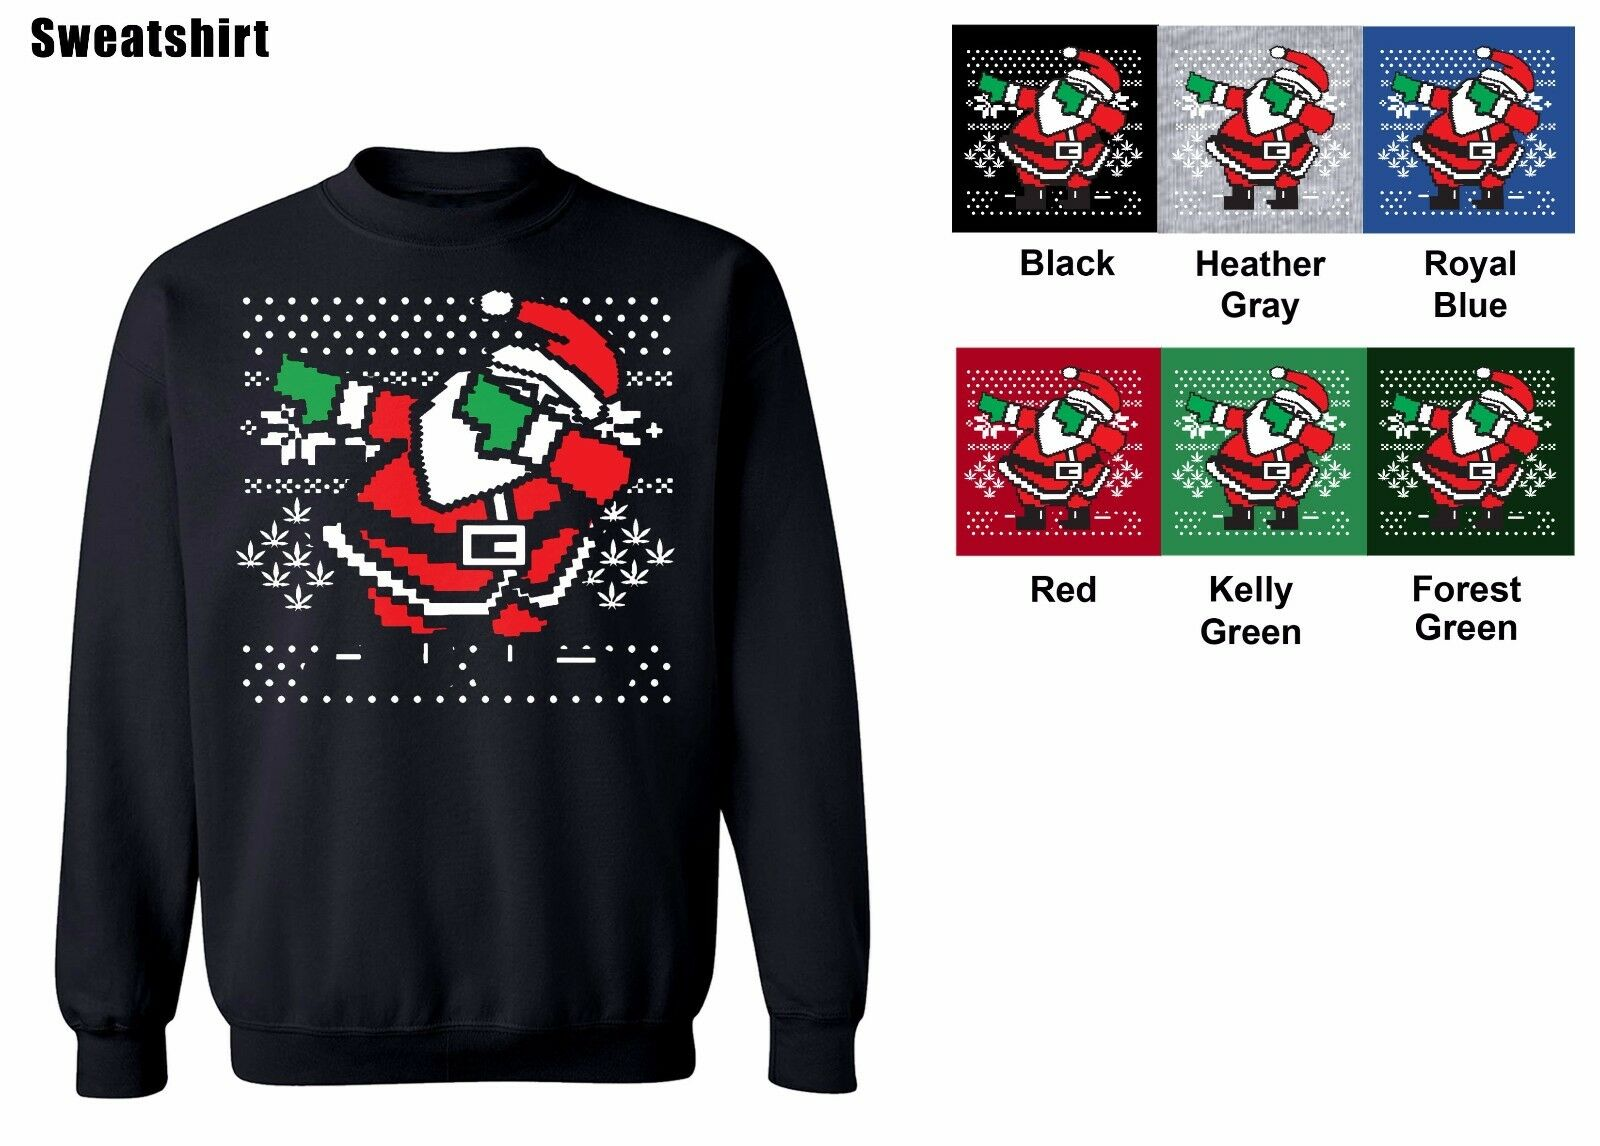 dabbing santa crew neck sweatshirt ugly christmas sweater s 5xl free shipping 1 of 3free shipping